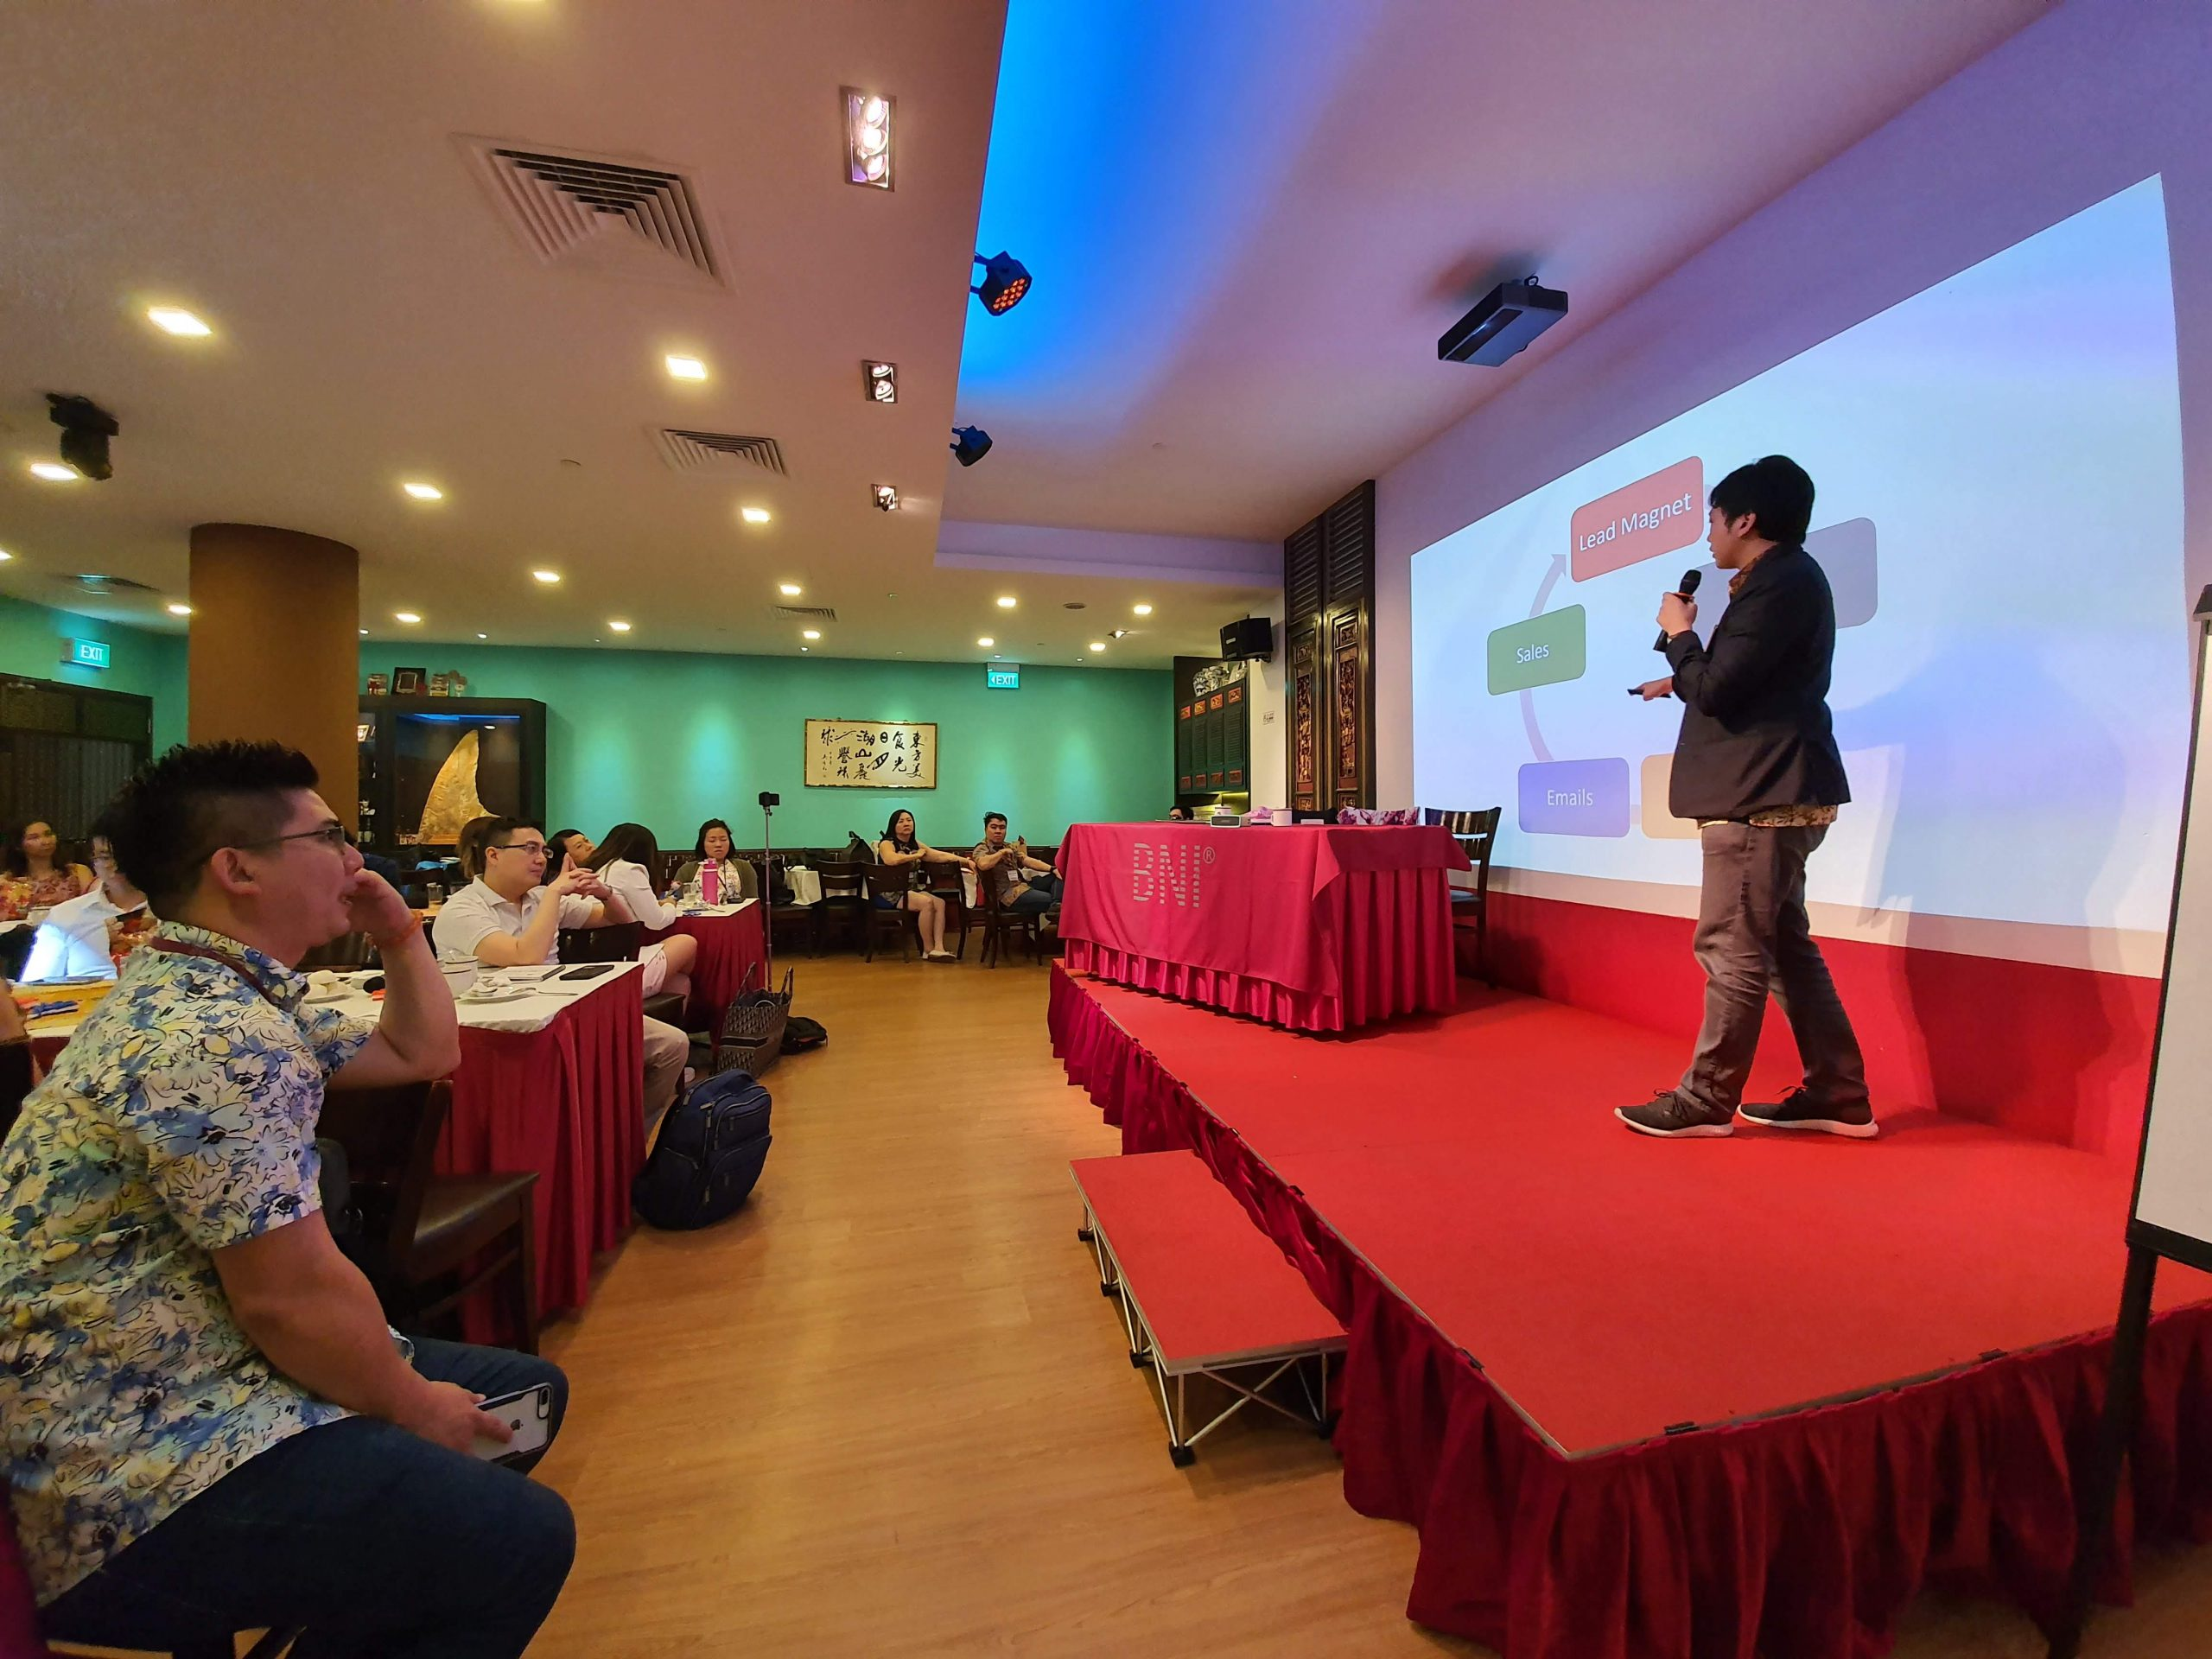 Event with Stage and Projector AV systems